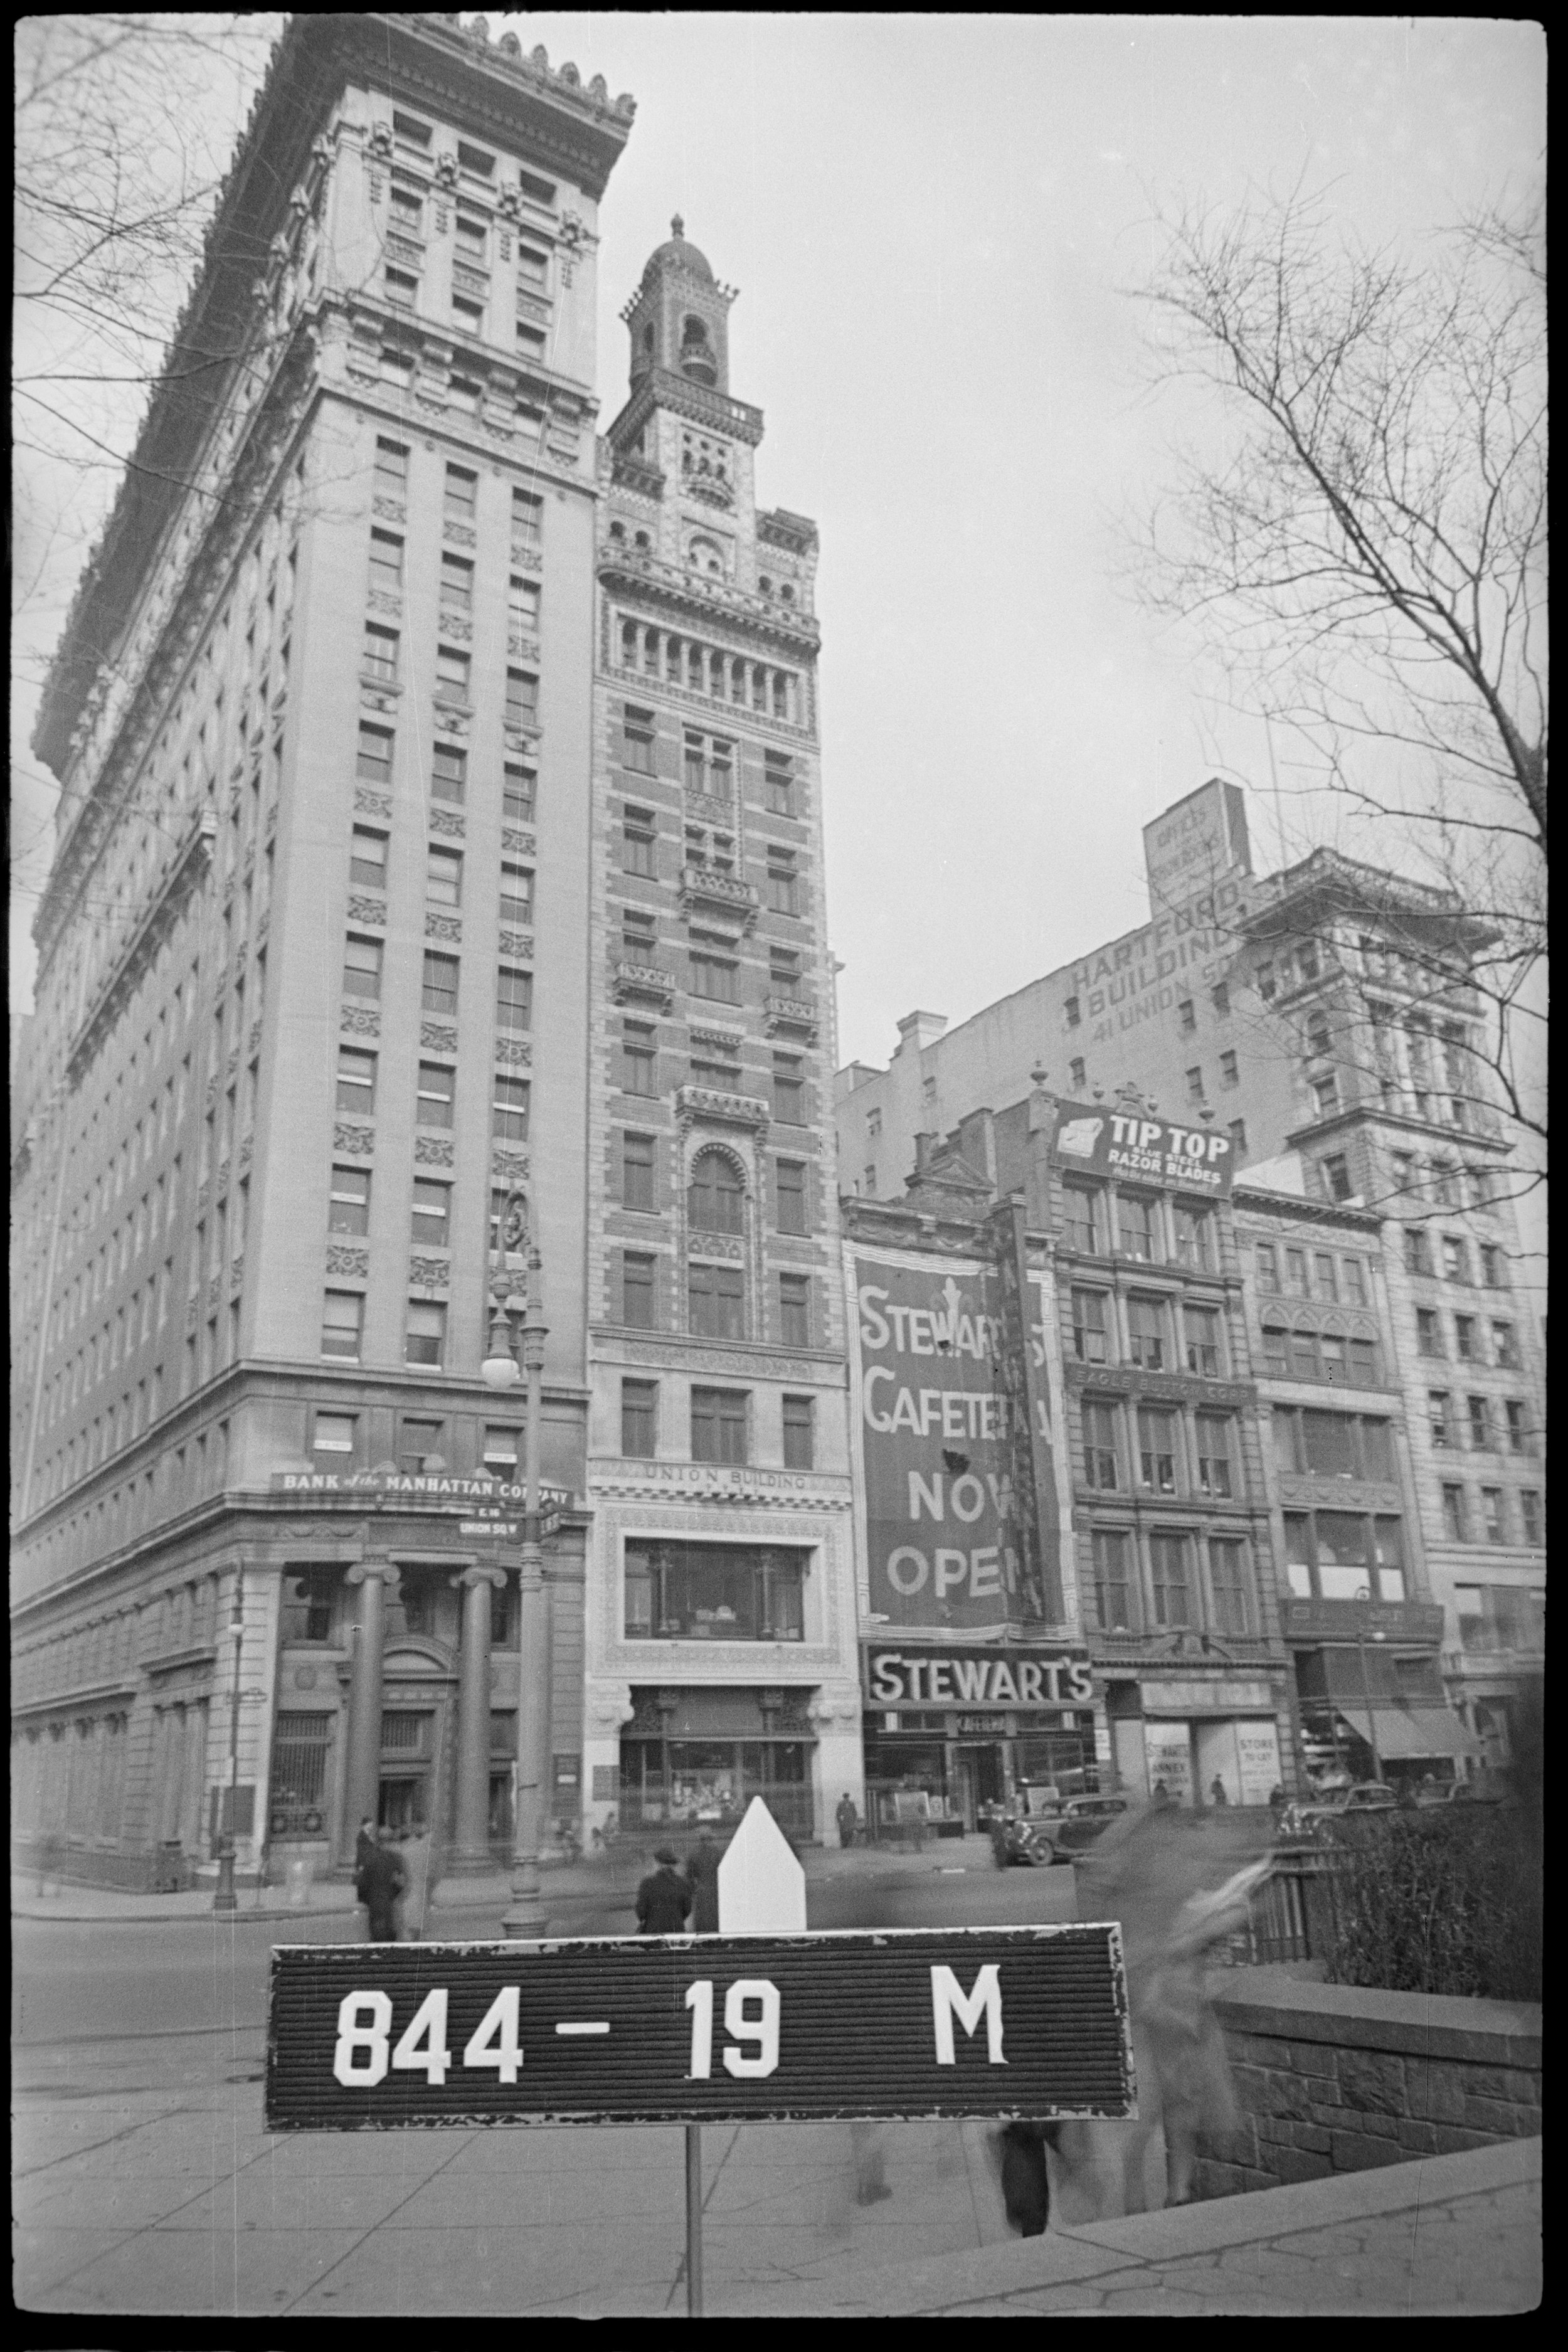 33 Union Square West, the location of the Factory from 1967 to 1968, shown here in a 1940 tax photo. Department of Finance Collection, NYC Municipal Archives.